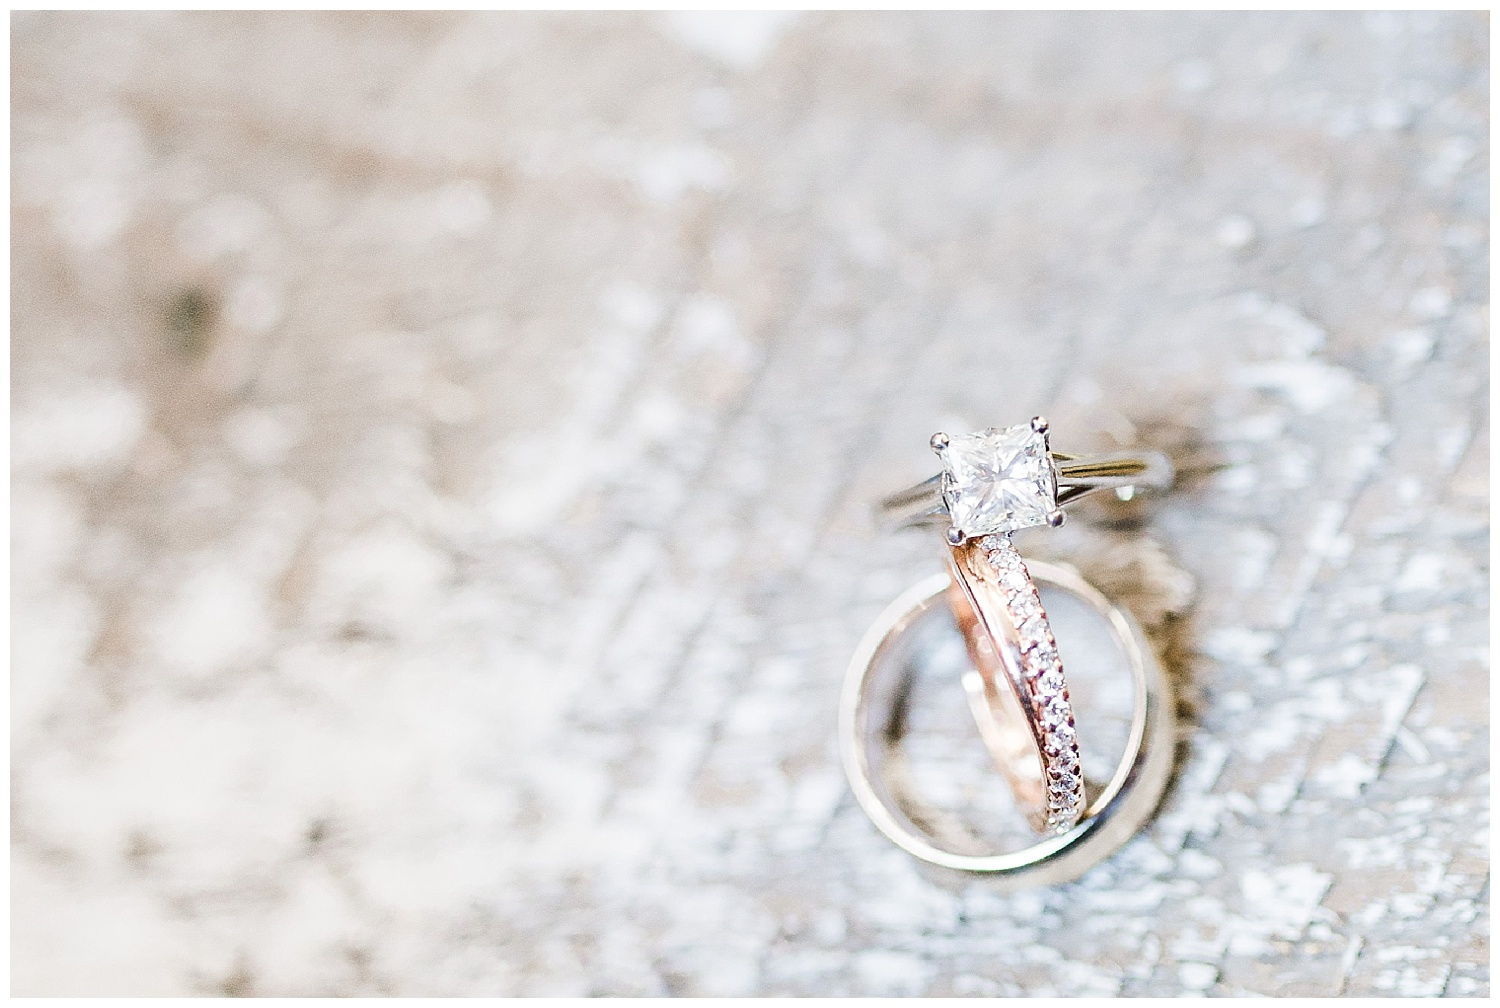 Rose gold wedding bands make my heart happy!